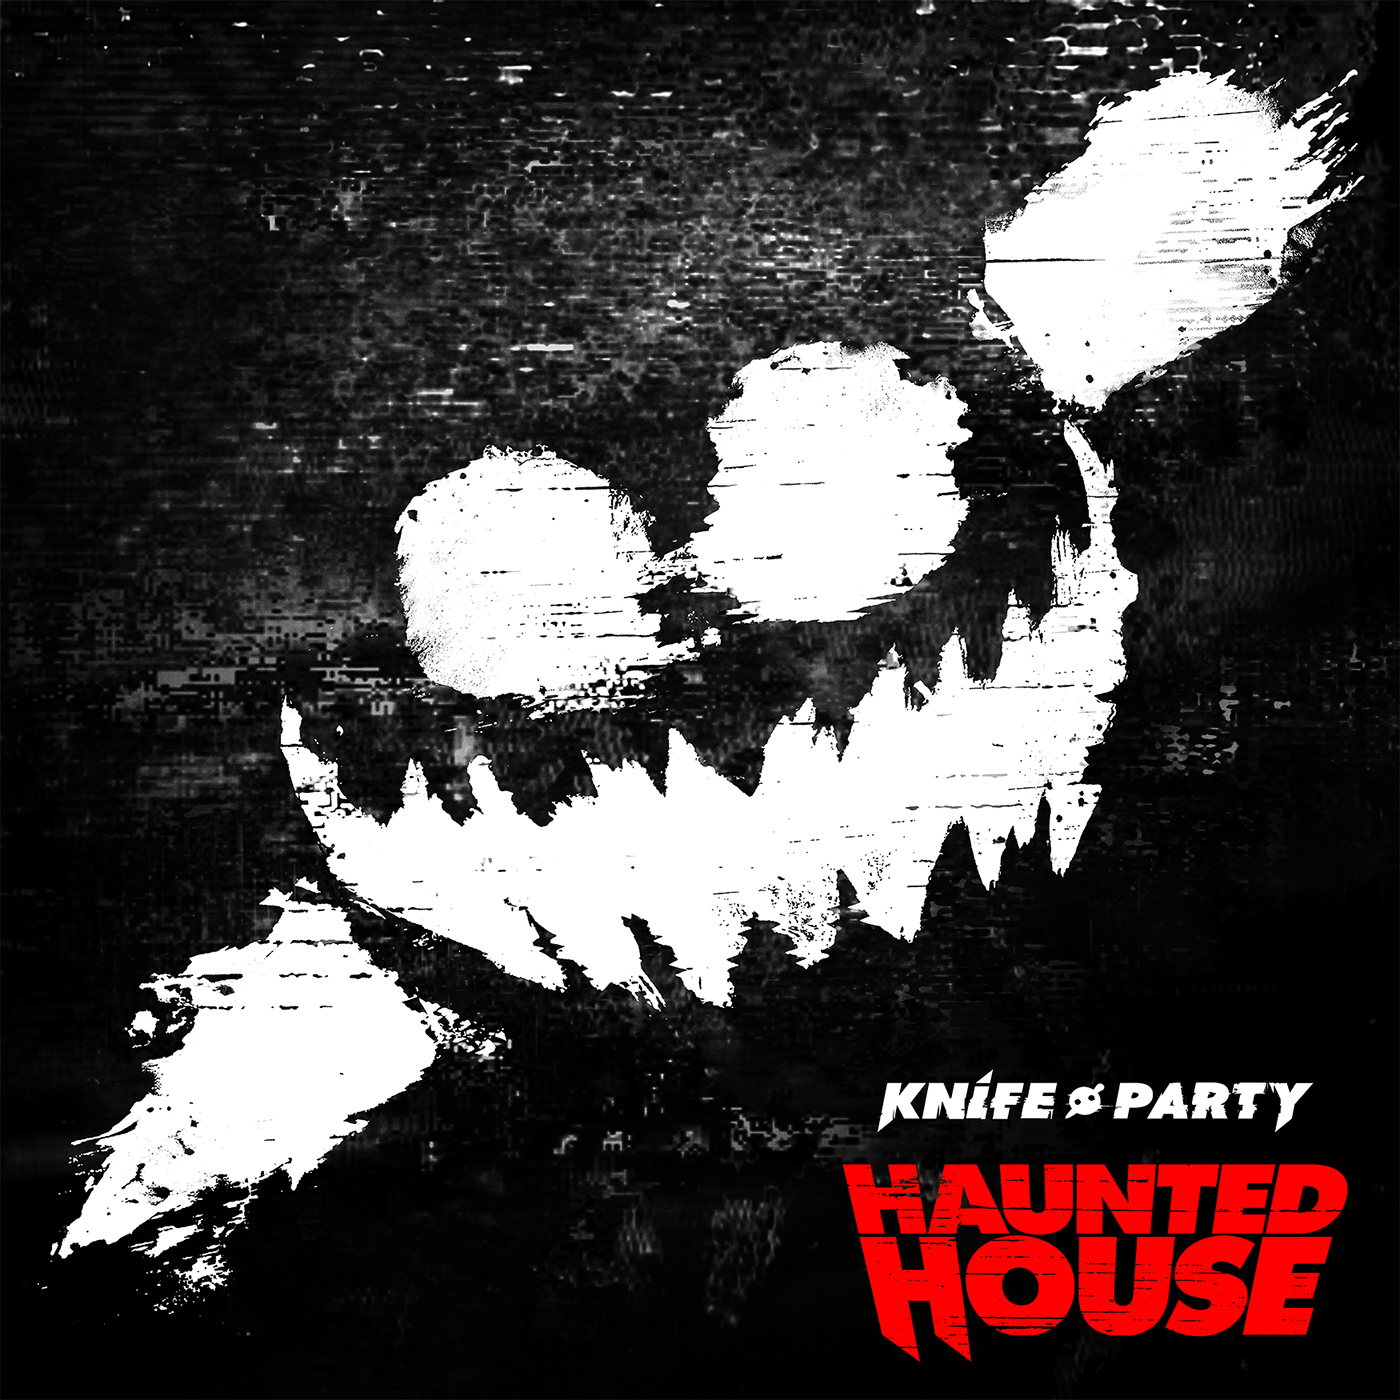 Knife party haunted house ep album cover on behance for House music cover